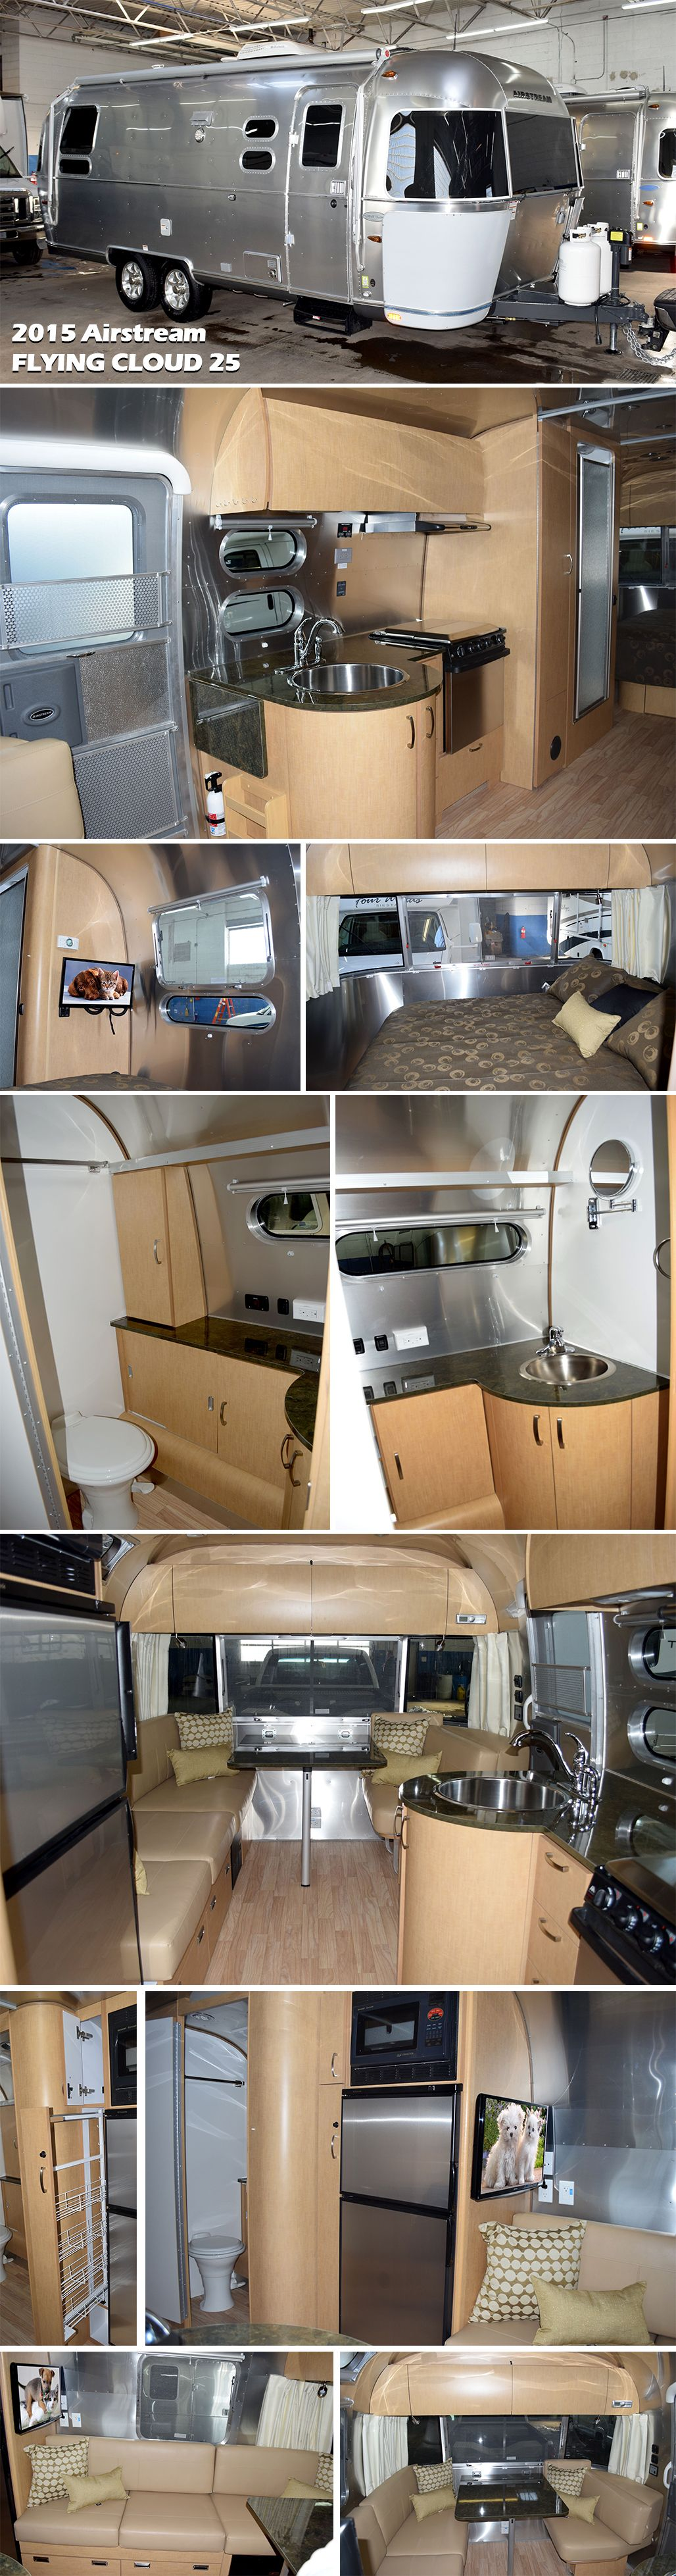 2017 Airstream Flying Cloud 25 This Practical Efficient Trailer Is Designed To Move Effortlessly